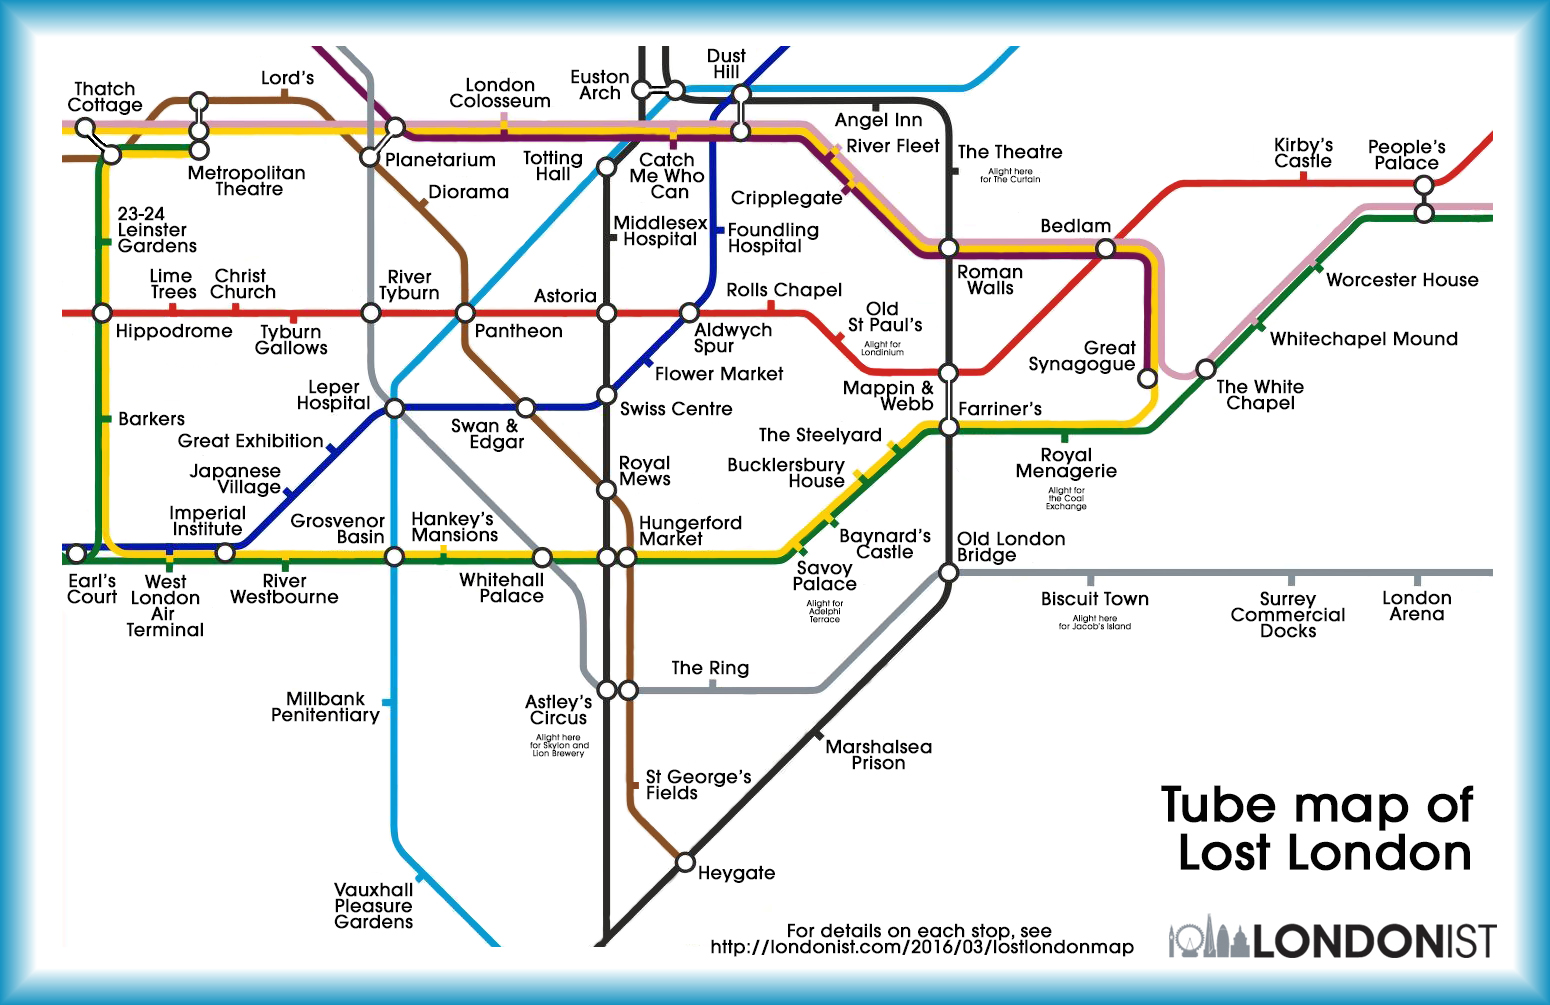 The Lost London Tube Map | Londonist